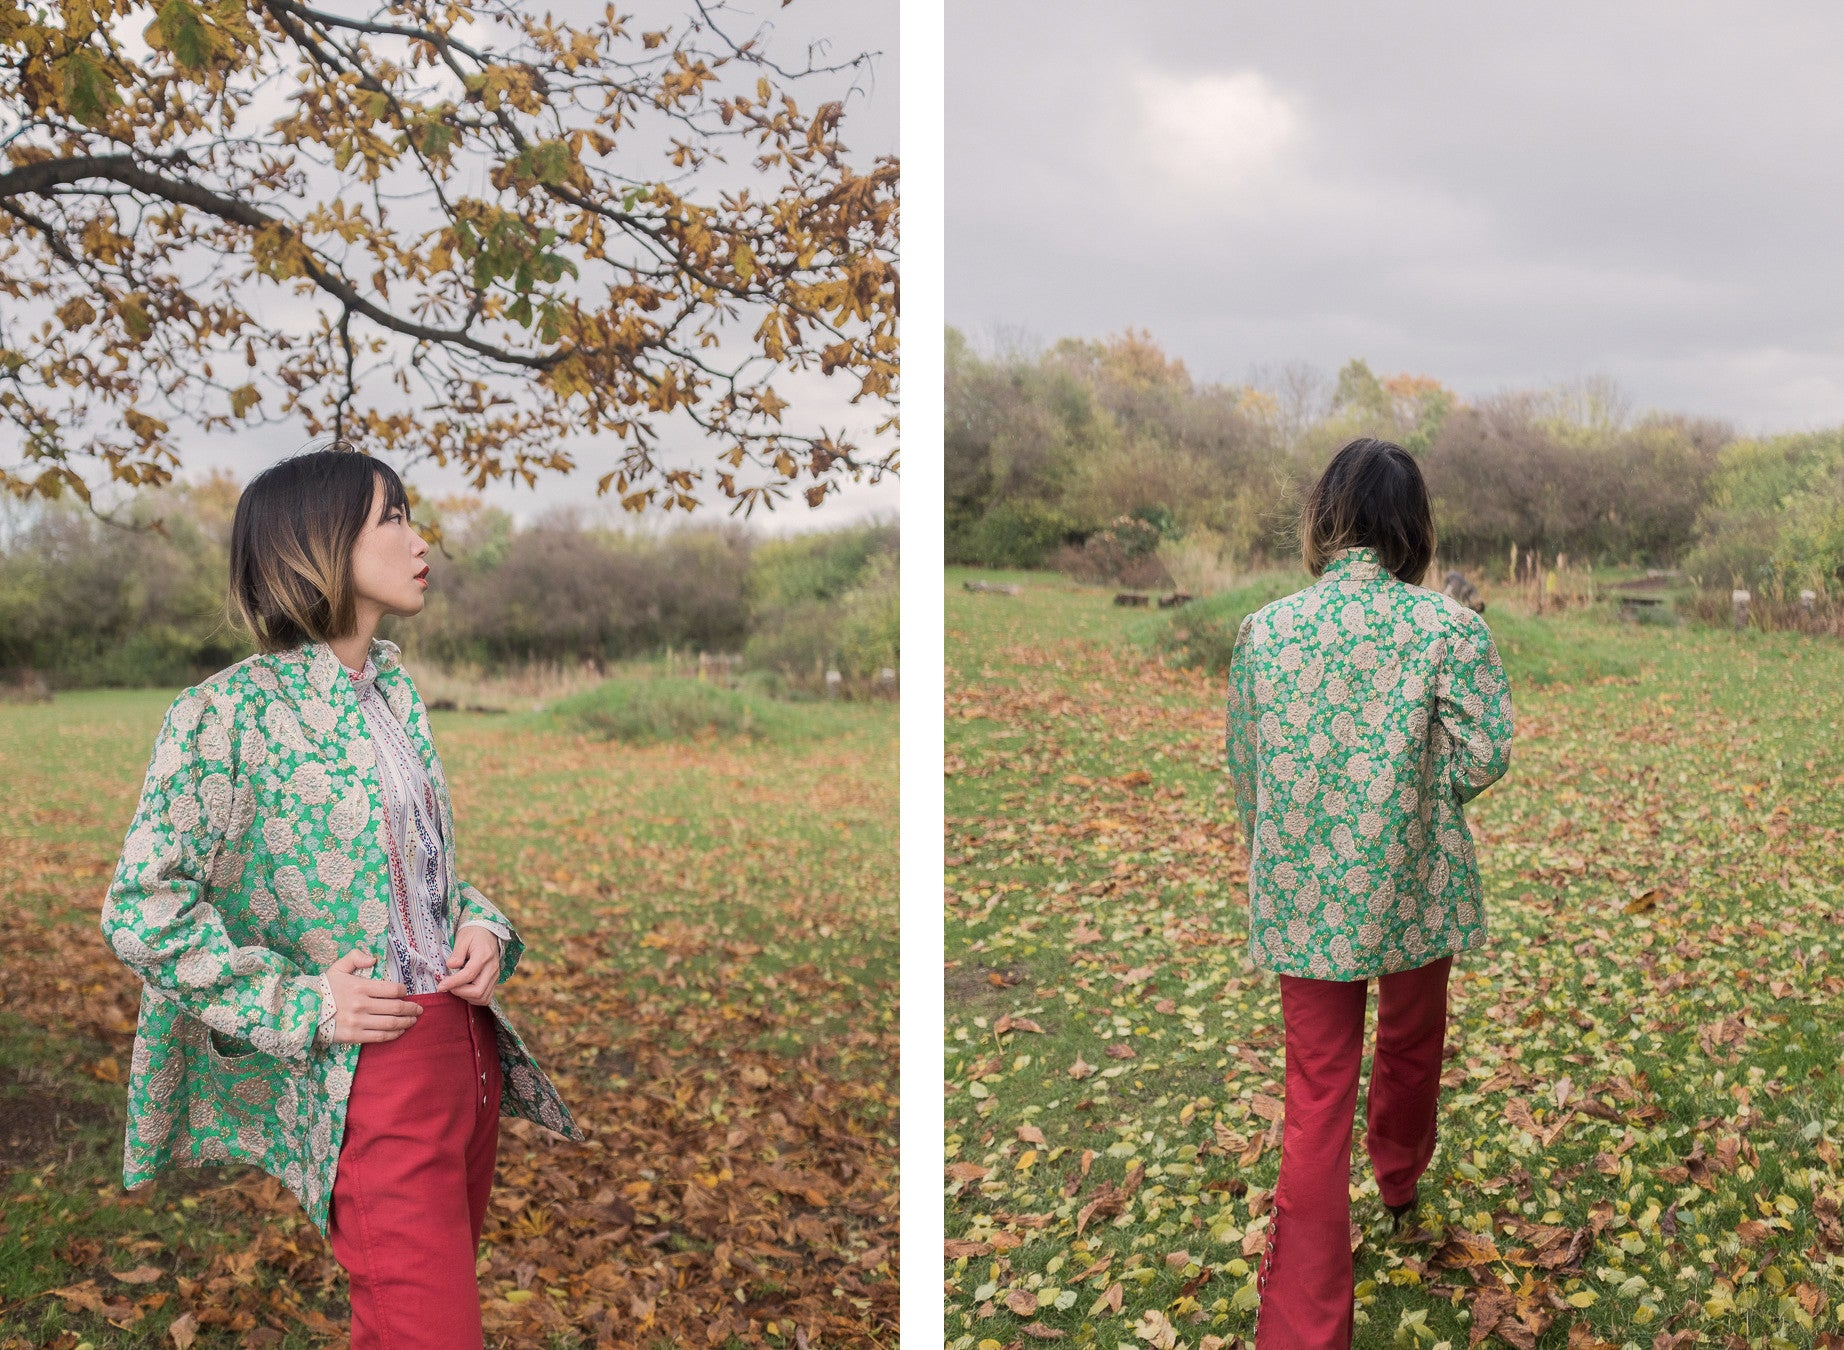 Marithe et Francois Girbaud jeans | How to dress 70s style? - Fashion guide | On Slowness blog